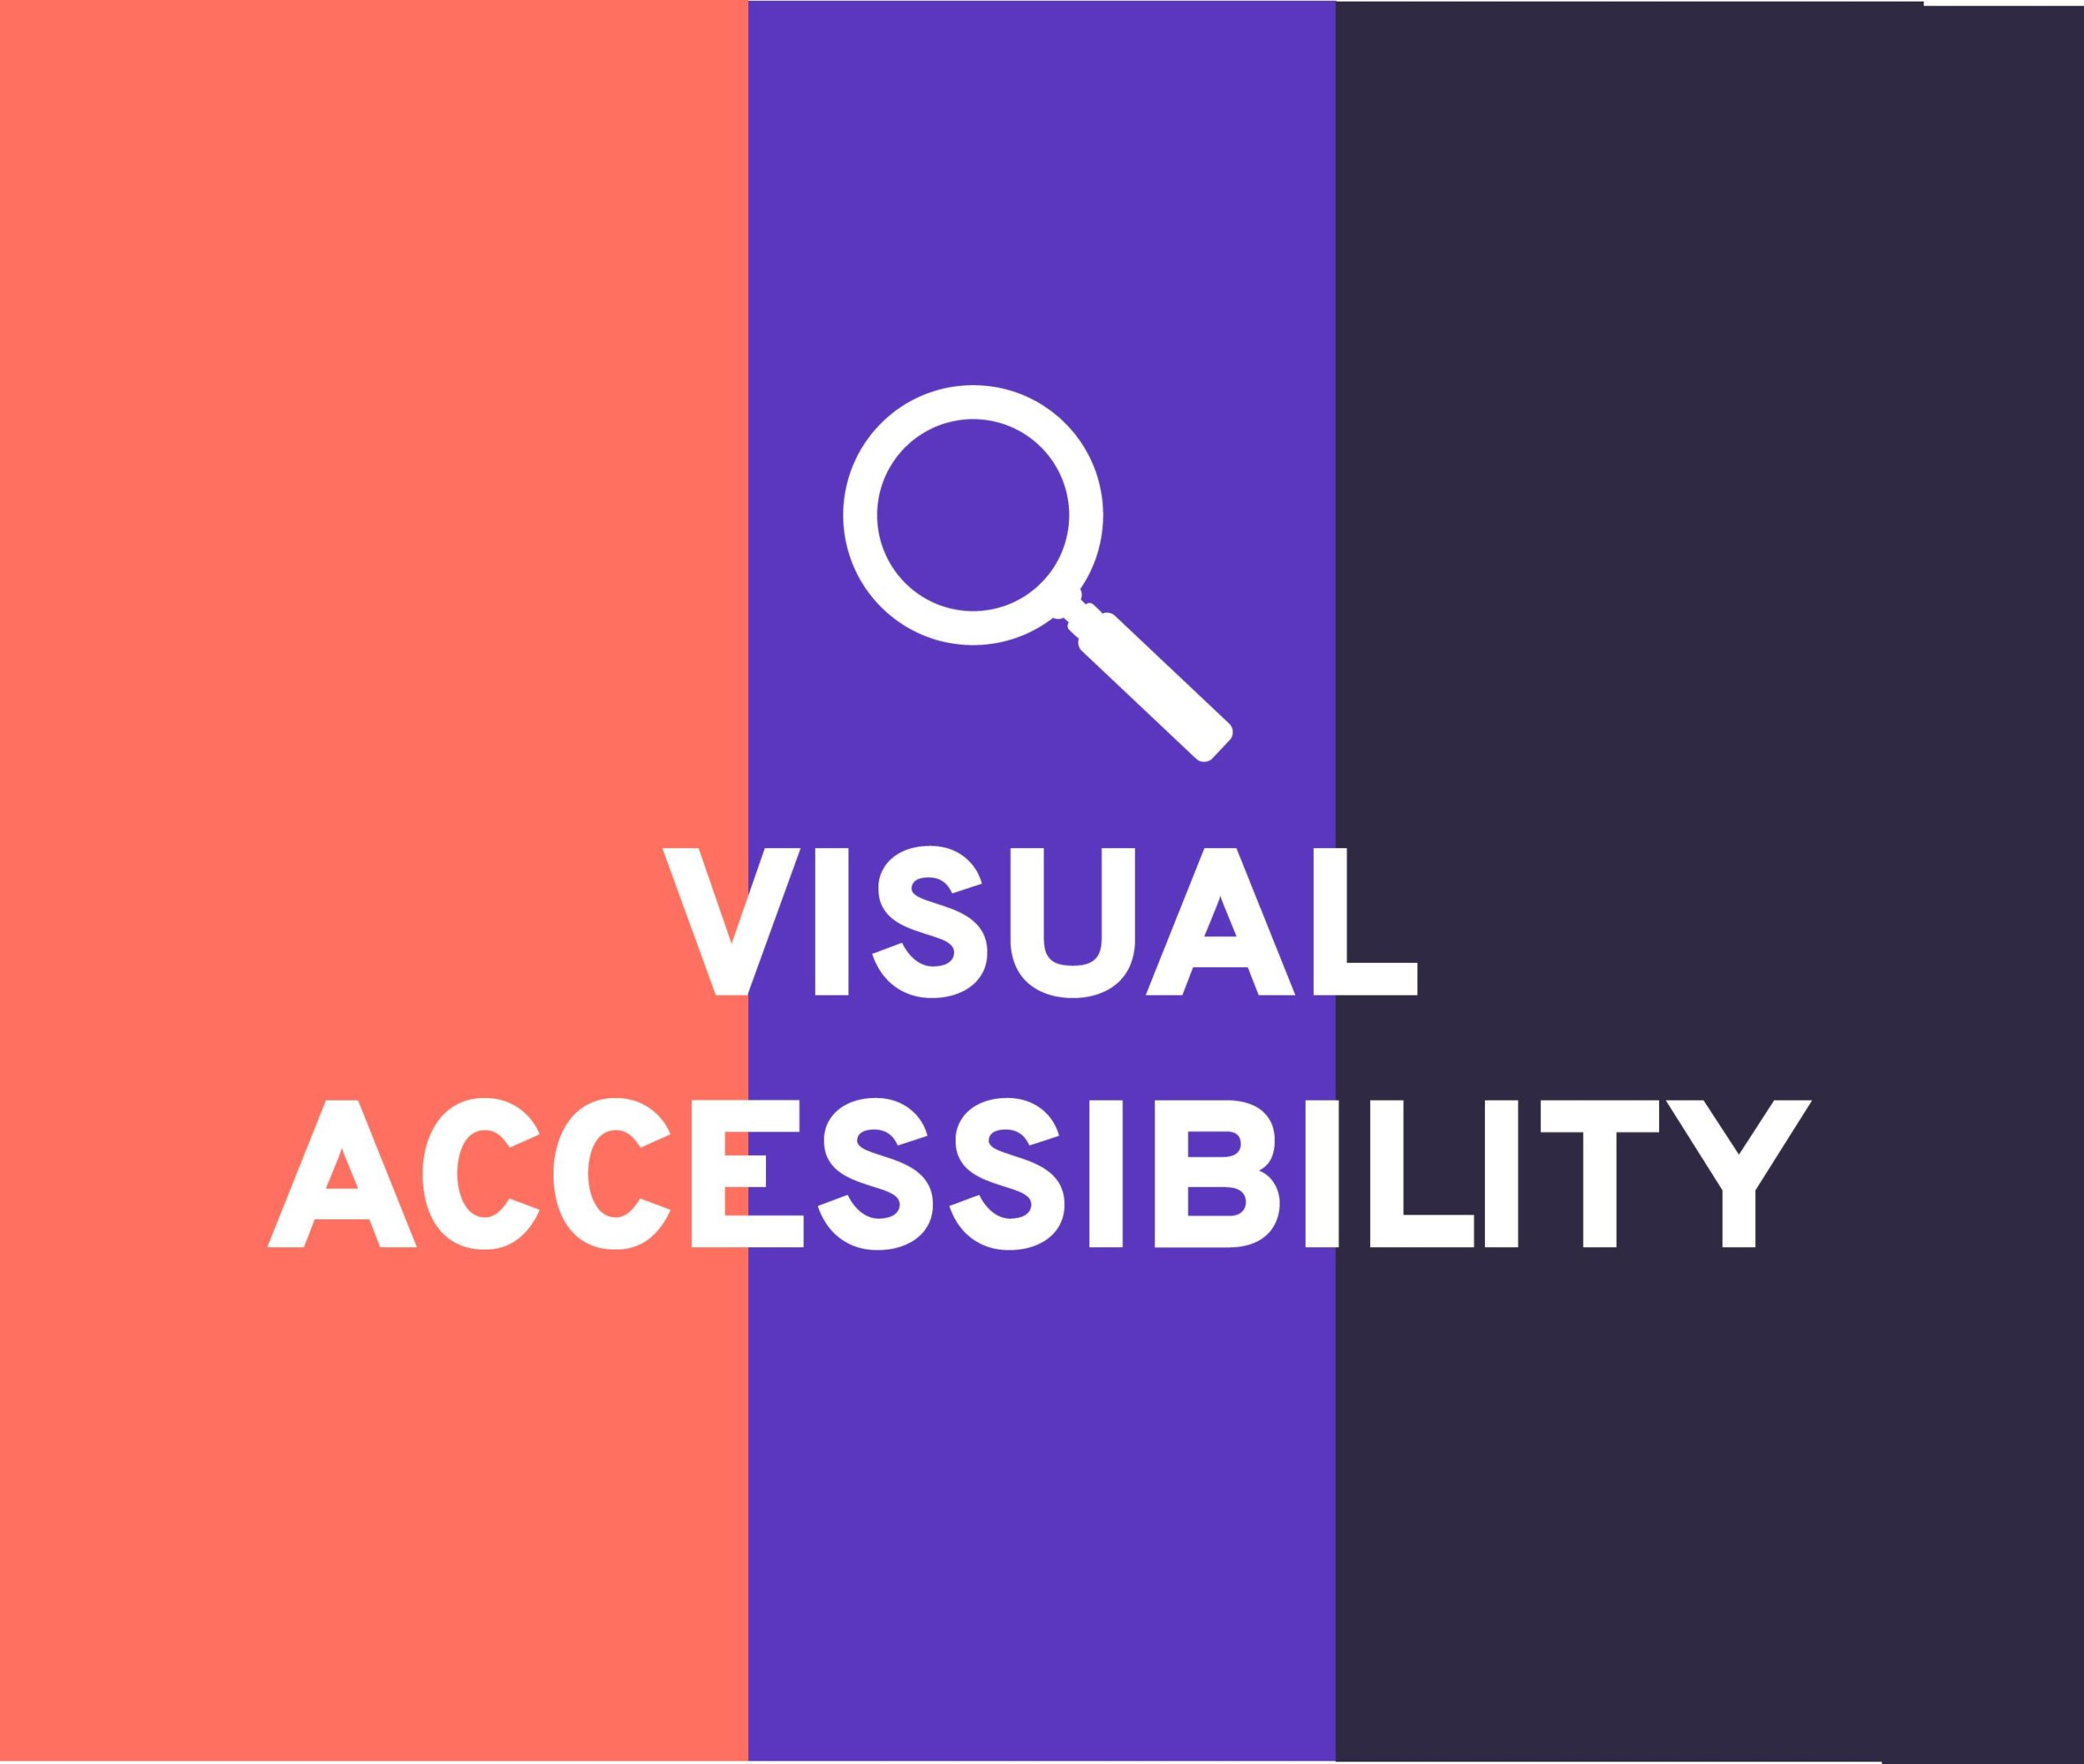 Magnifier and text, Visual accessibility with a tricolor backround to visualize the importance of the color contrast in accessible content